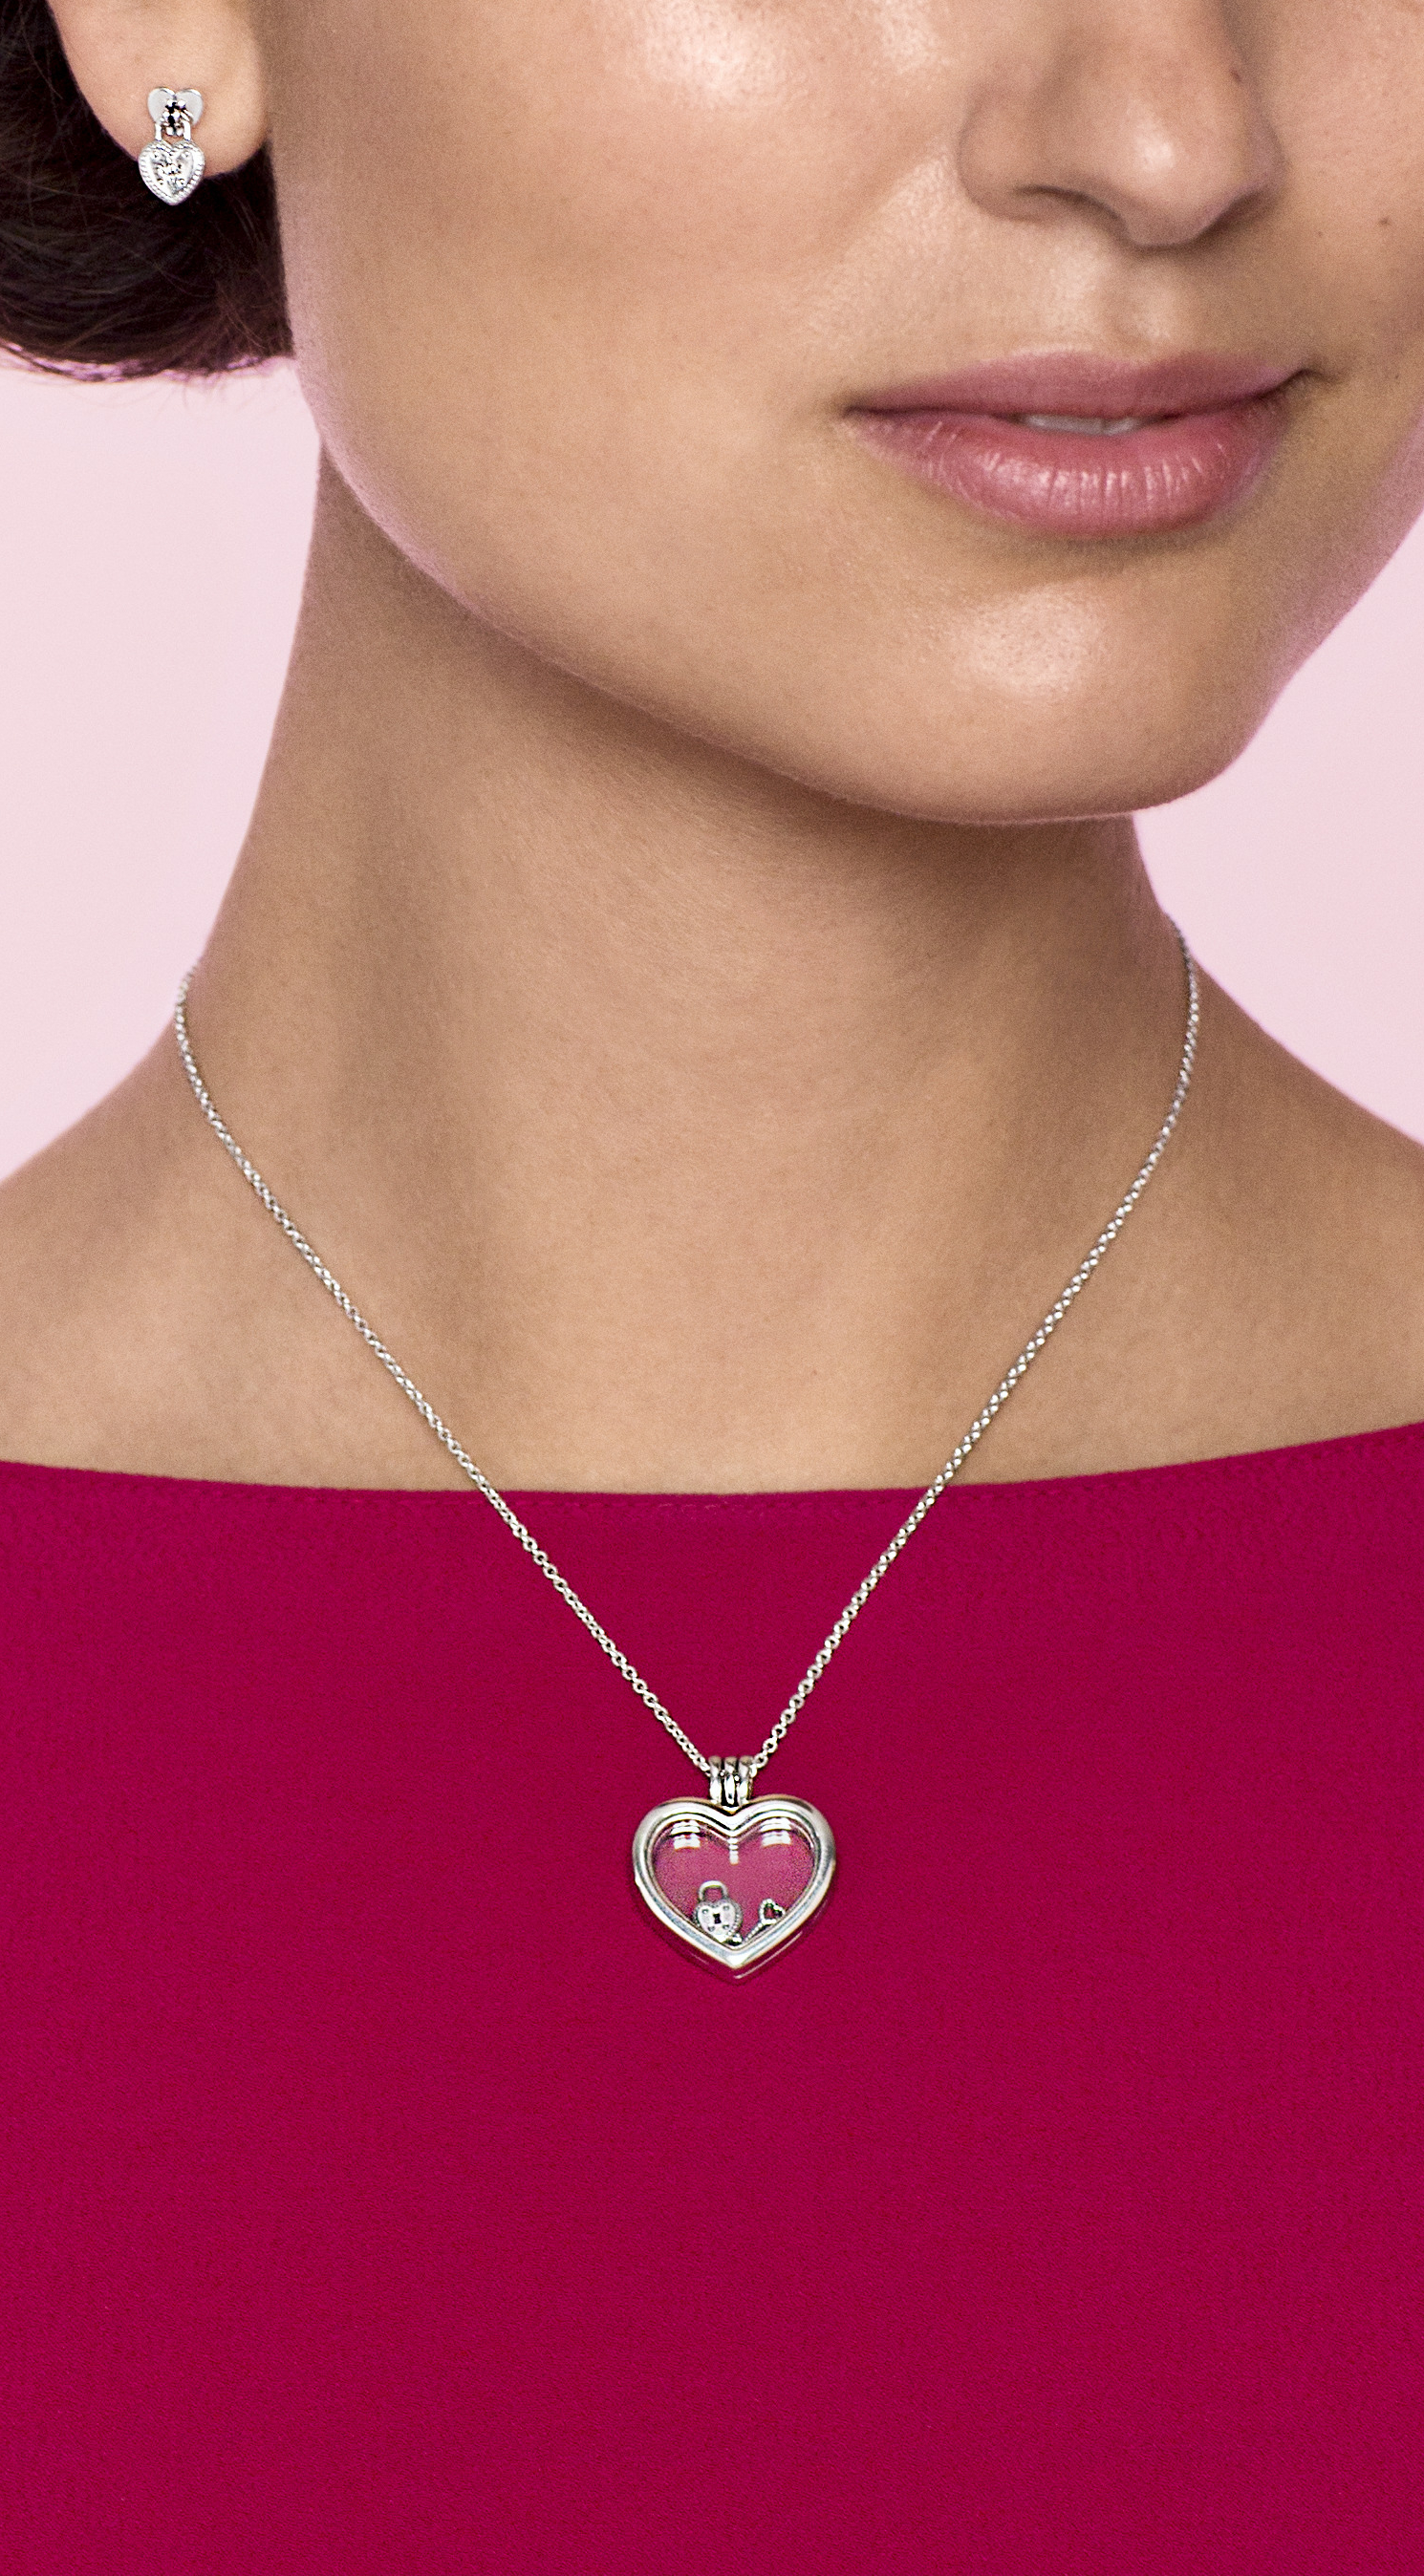 Valentine's Day Jewellery | Pandora Valentine's Day In 2019 Throughout Most Current Twinkling Christmas Tree Locket Element Necklaces (View 16 of 25)